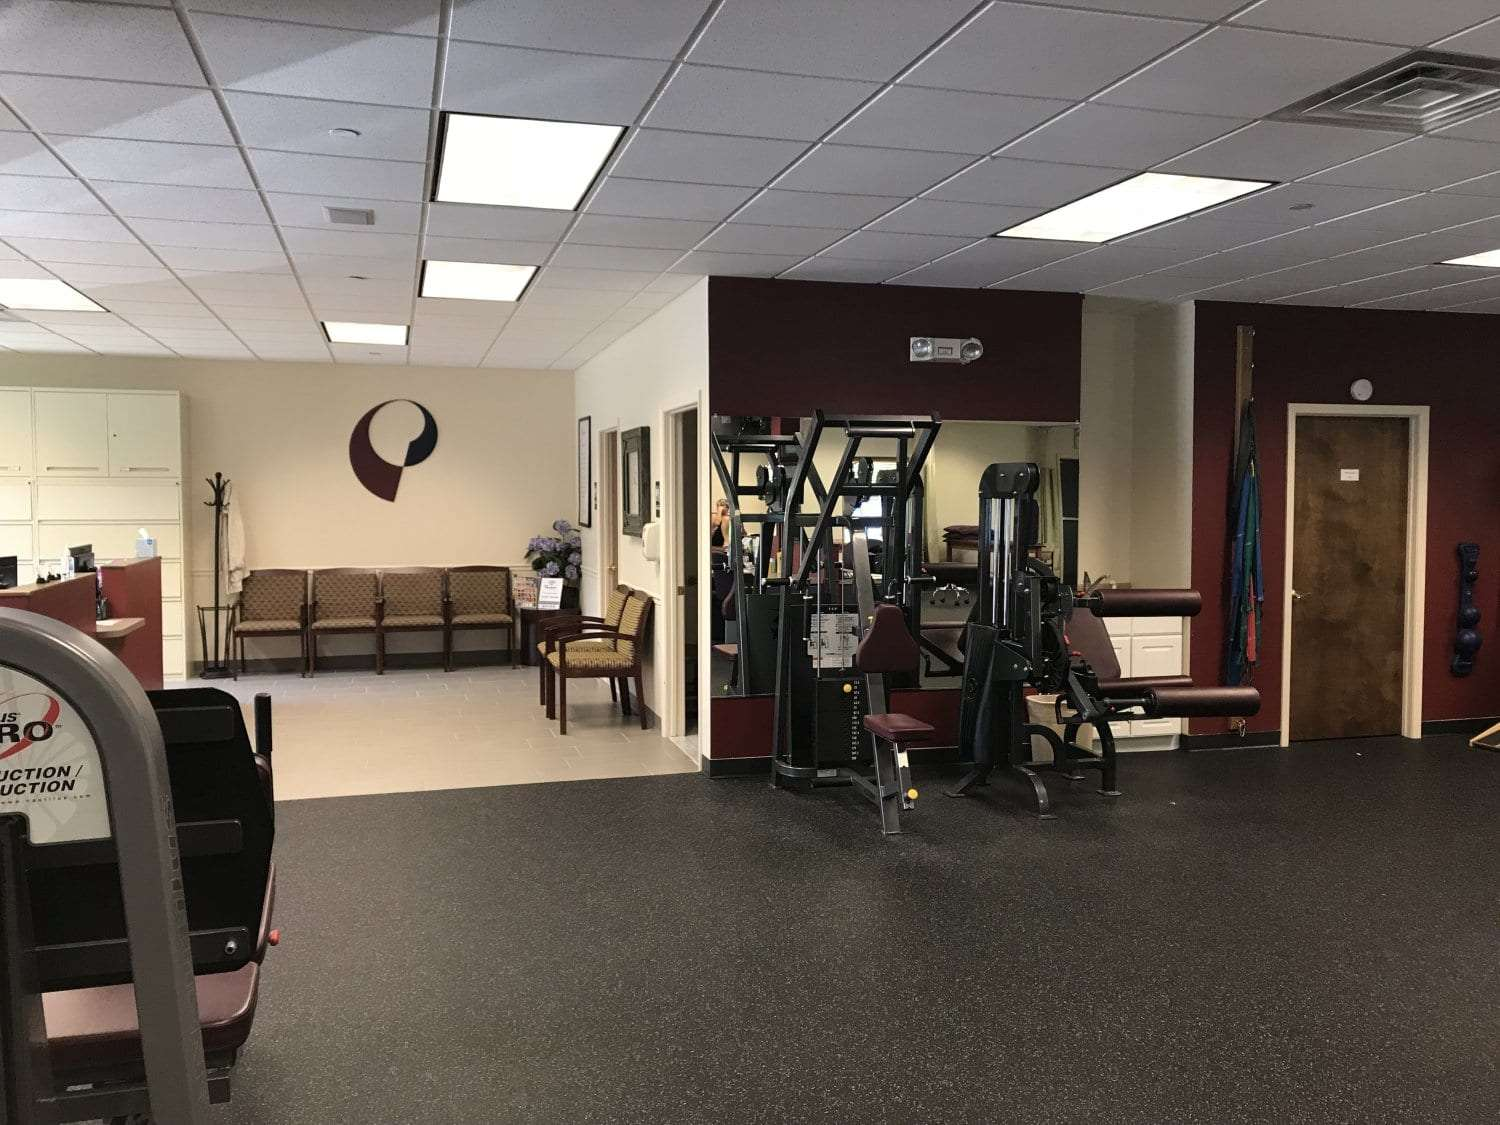 Here is a photo of the interior of our physical therapy clinic in East Hanover, New Jersey.